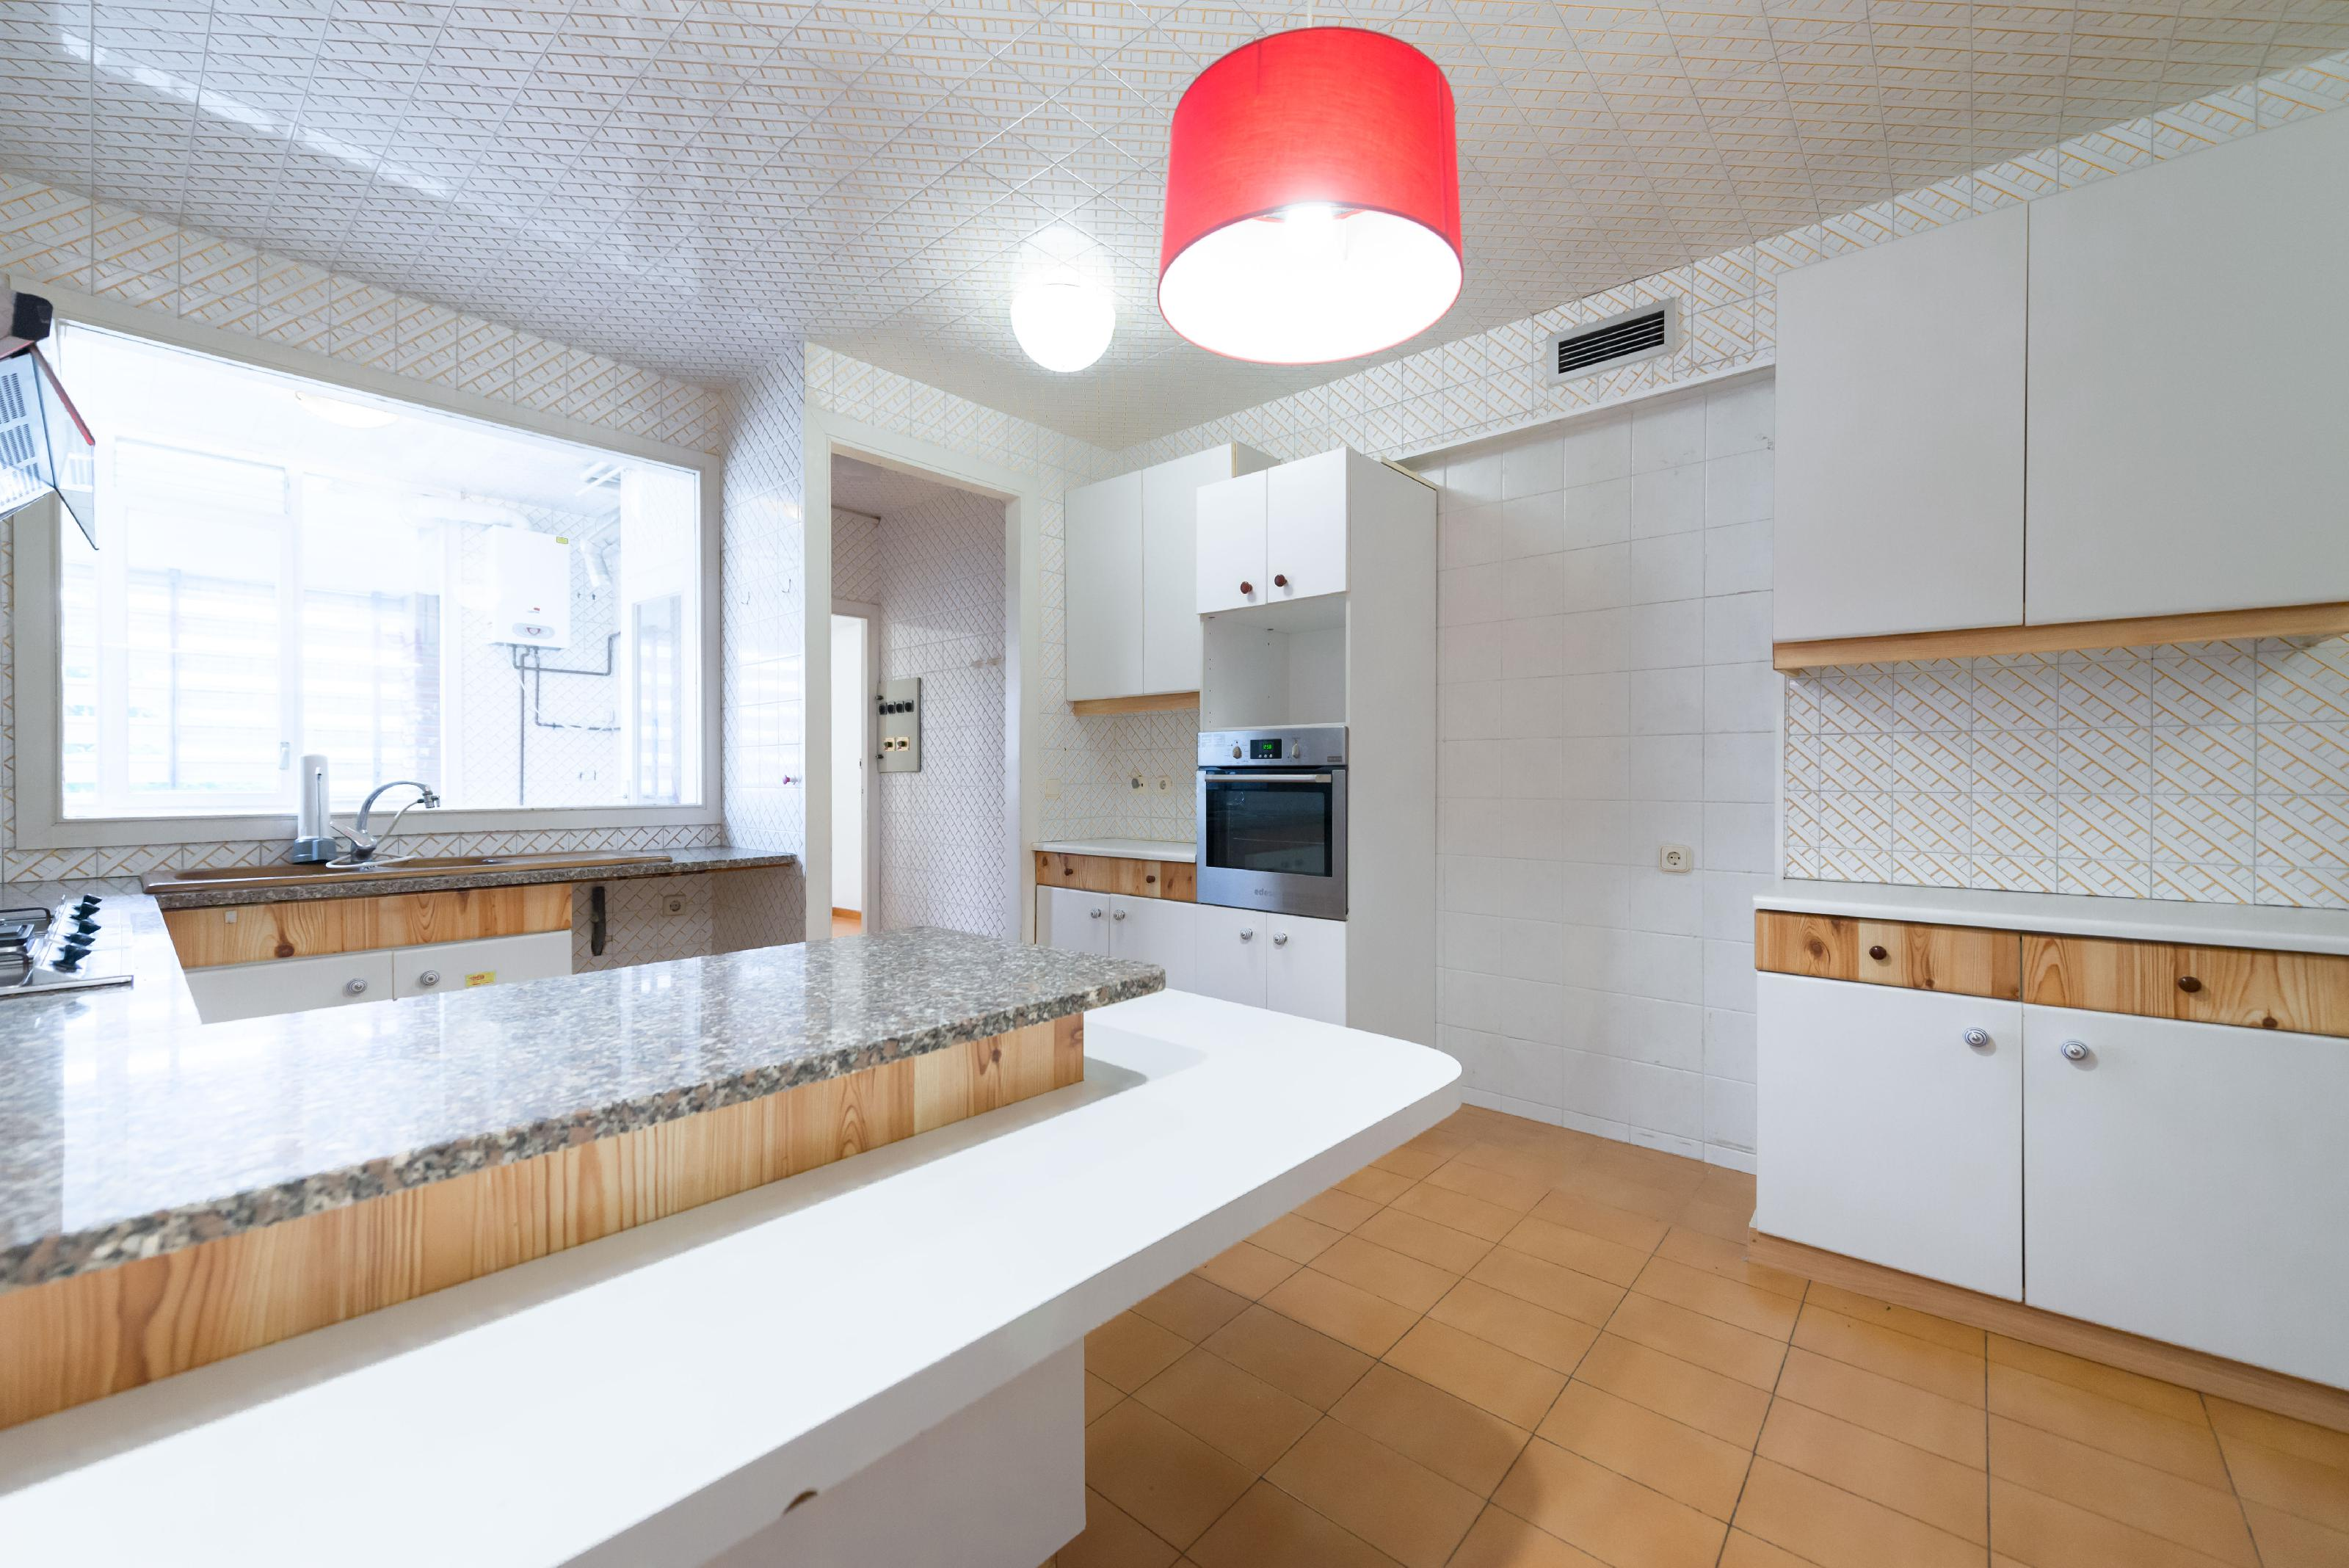 245495 Penthouse for sale in Les Corts, Pedralbes 8